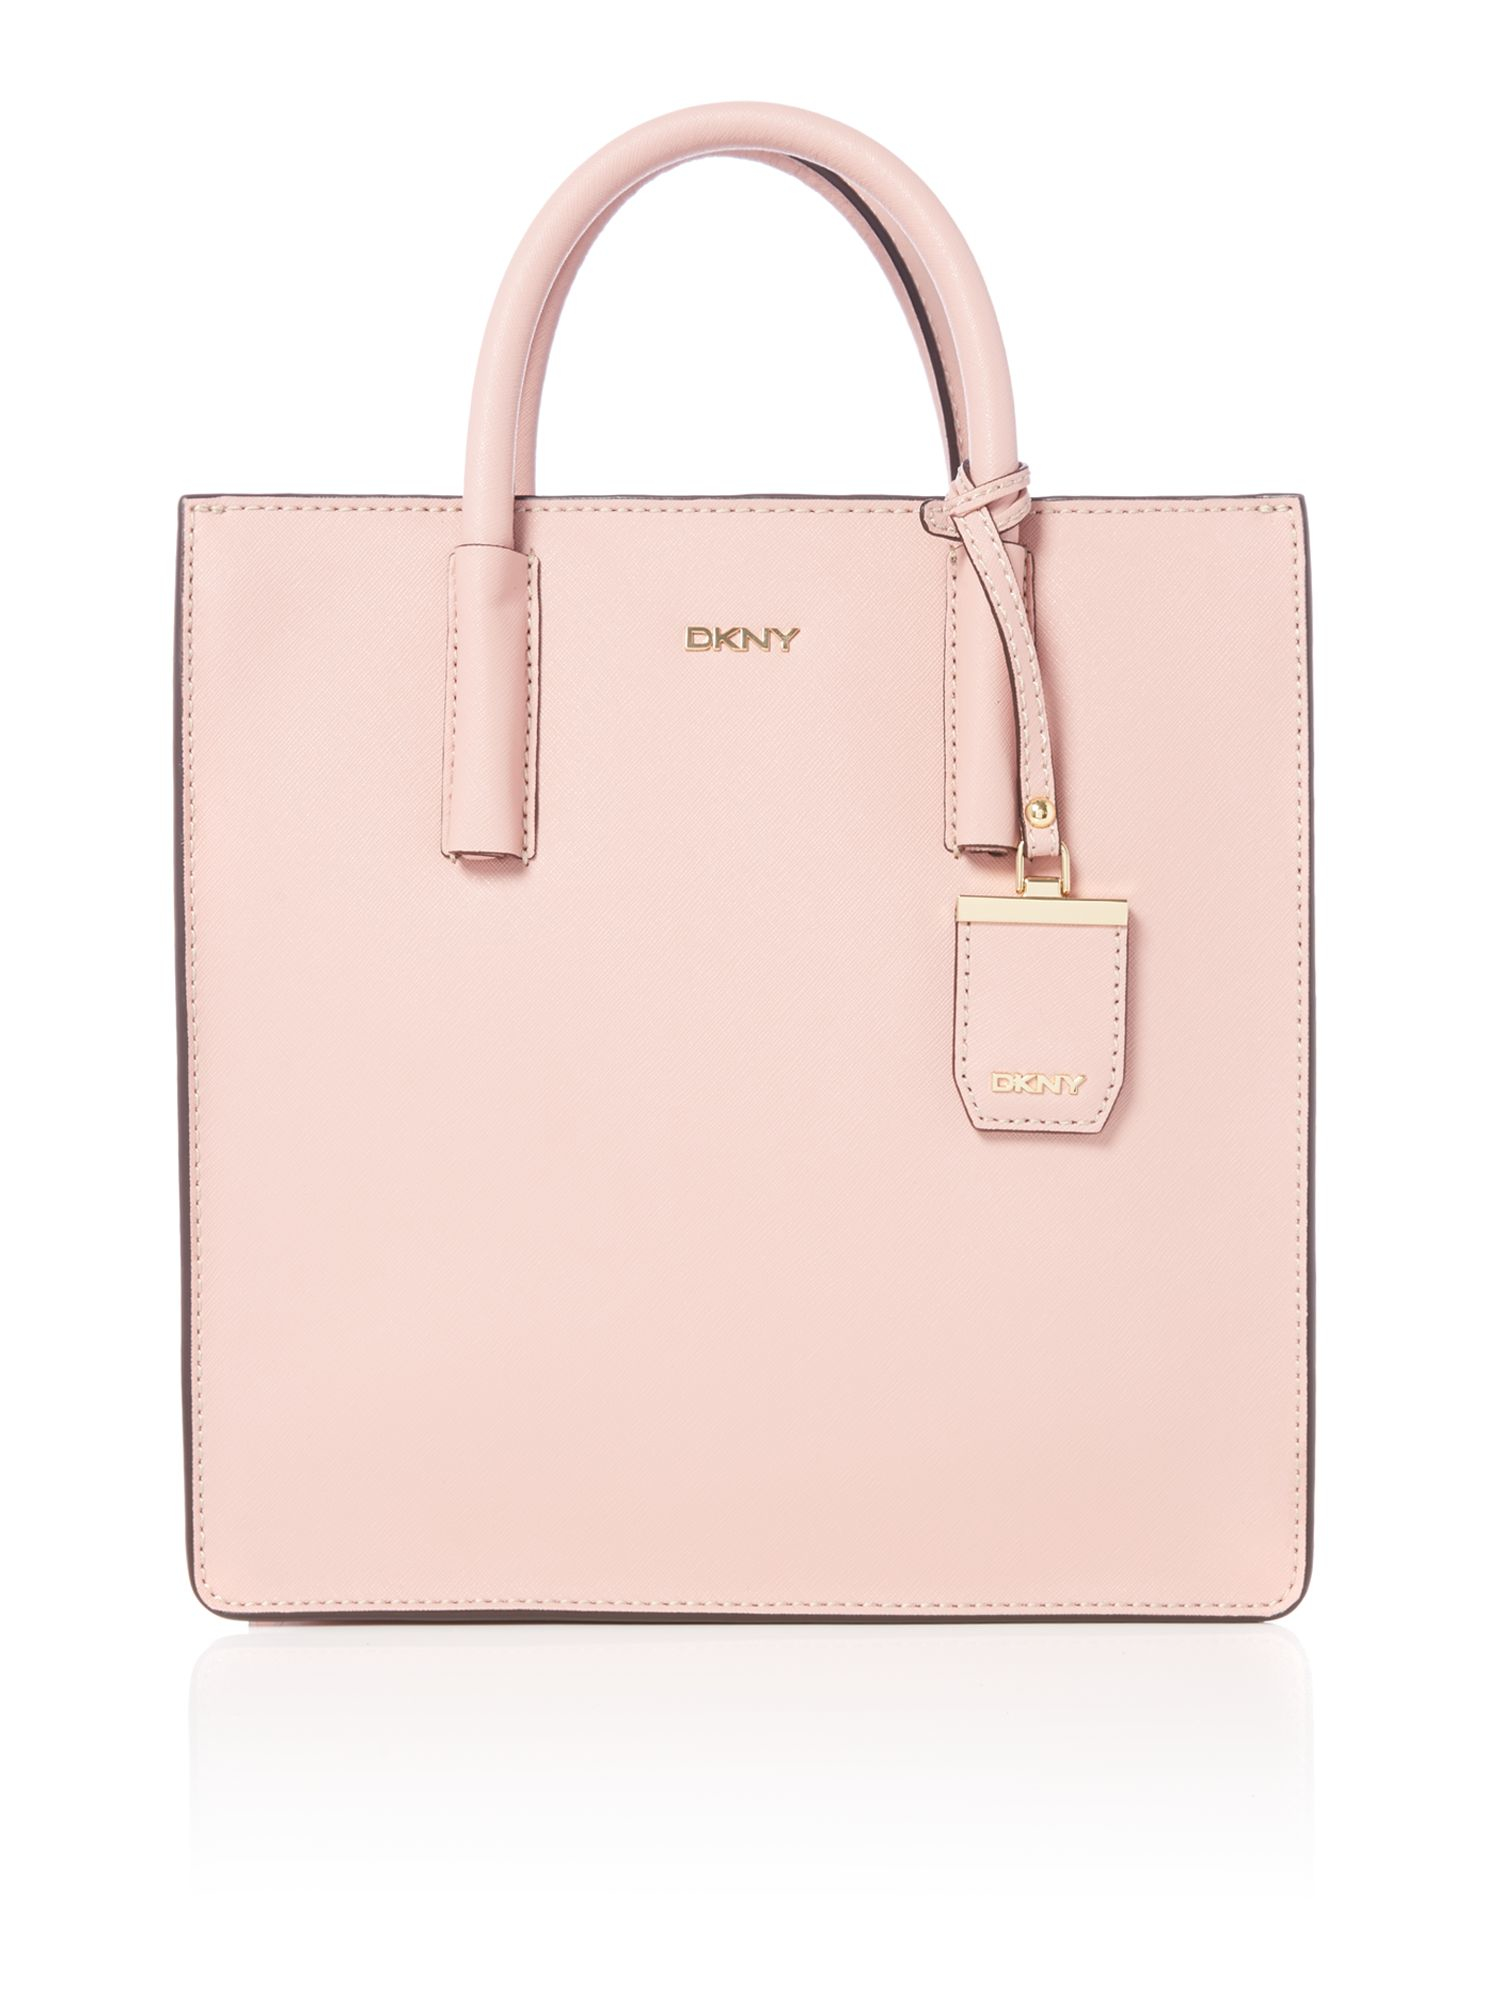 dkny saffiano light pink tote bag in pink lyst. Black Bedroom Furniture Sets. Home Design Ideas